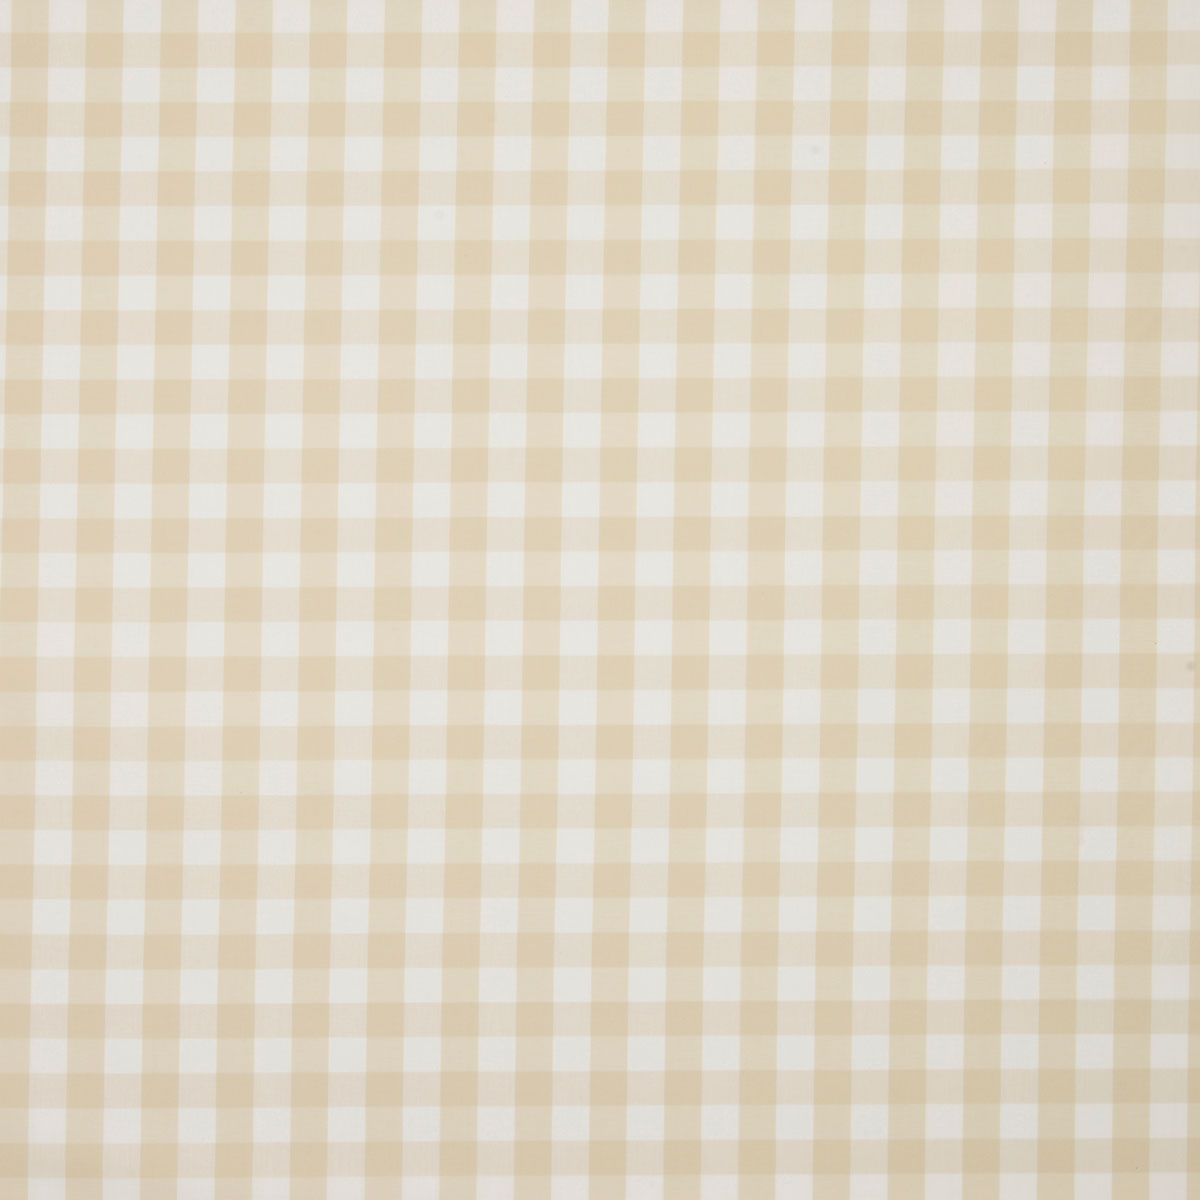 Stockists of Cream Breeze Curtain Fabric